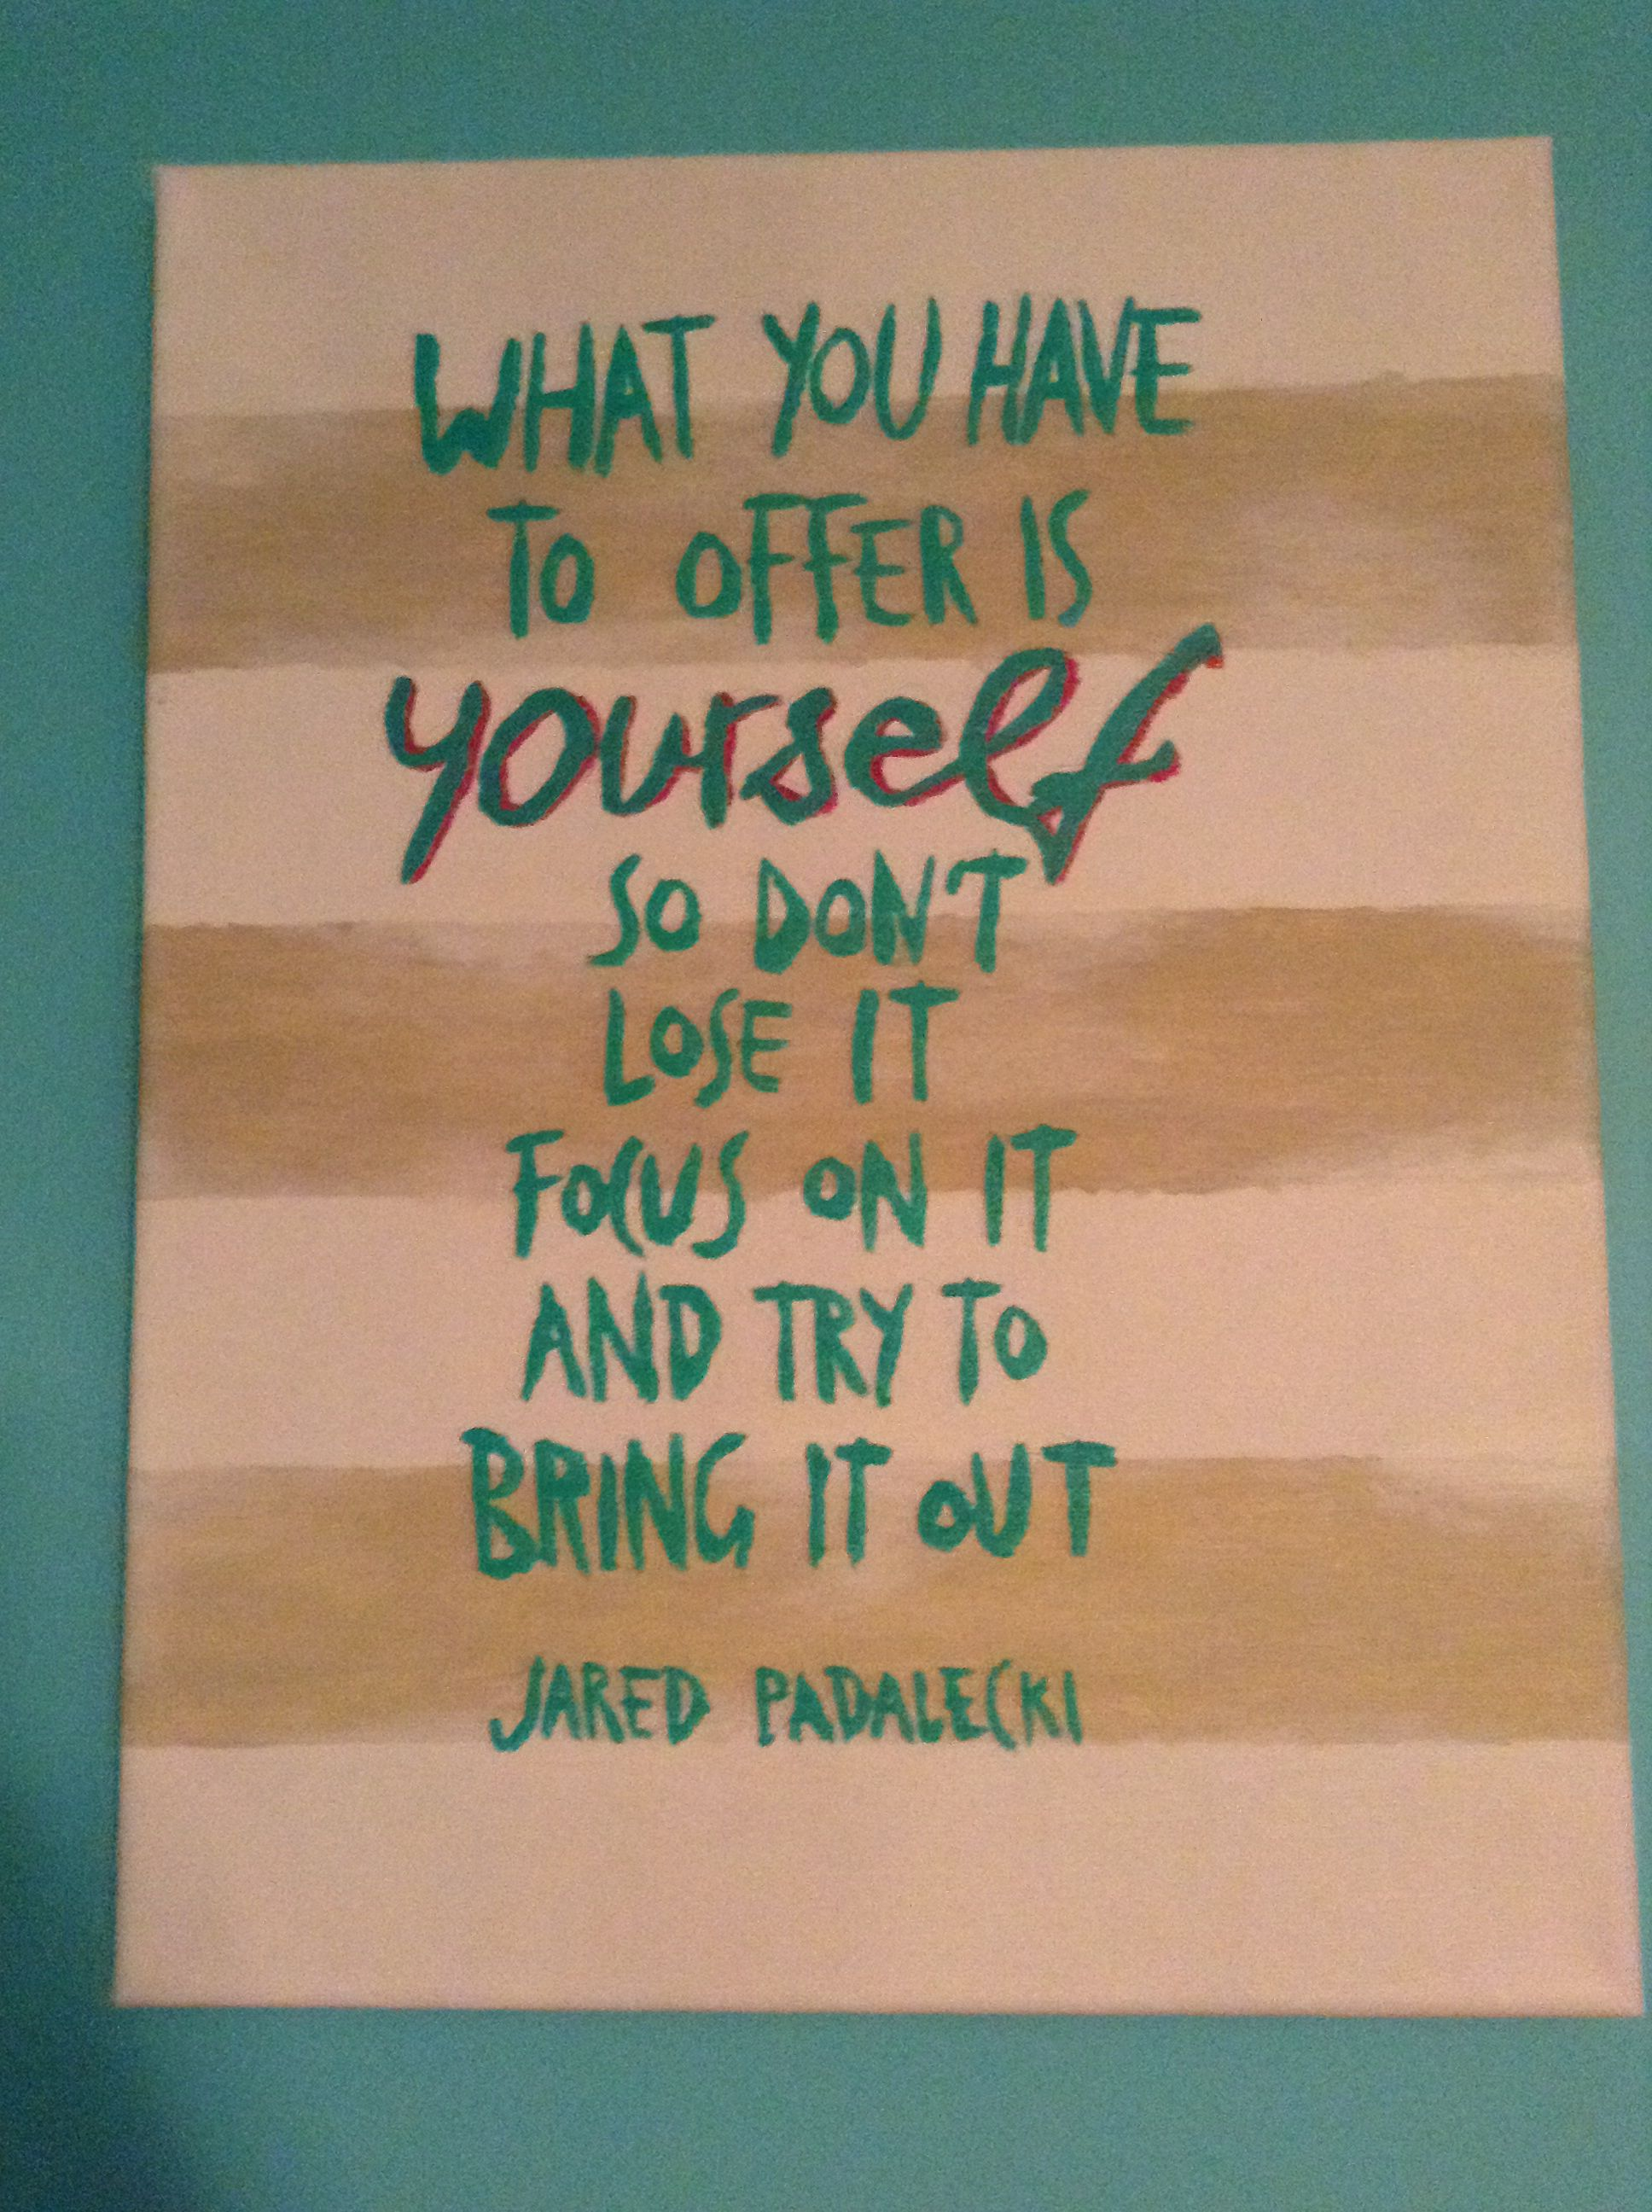 Jared padalecki quotes - Jared Padalecki Painted Quote By Me C E A